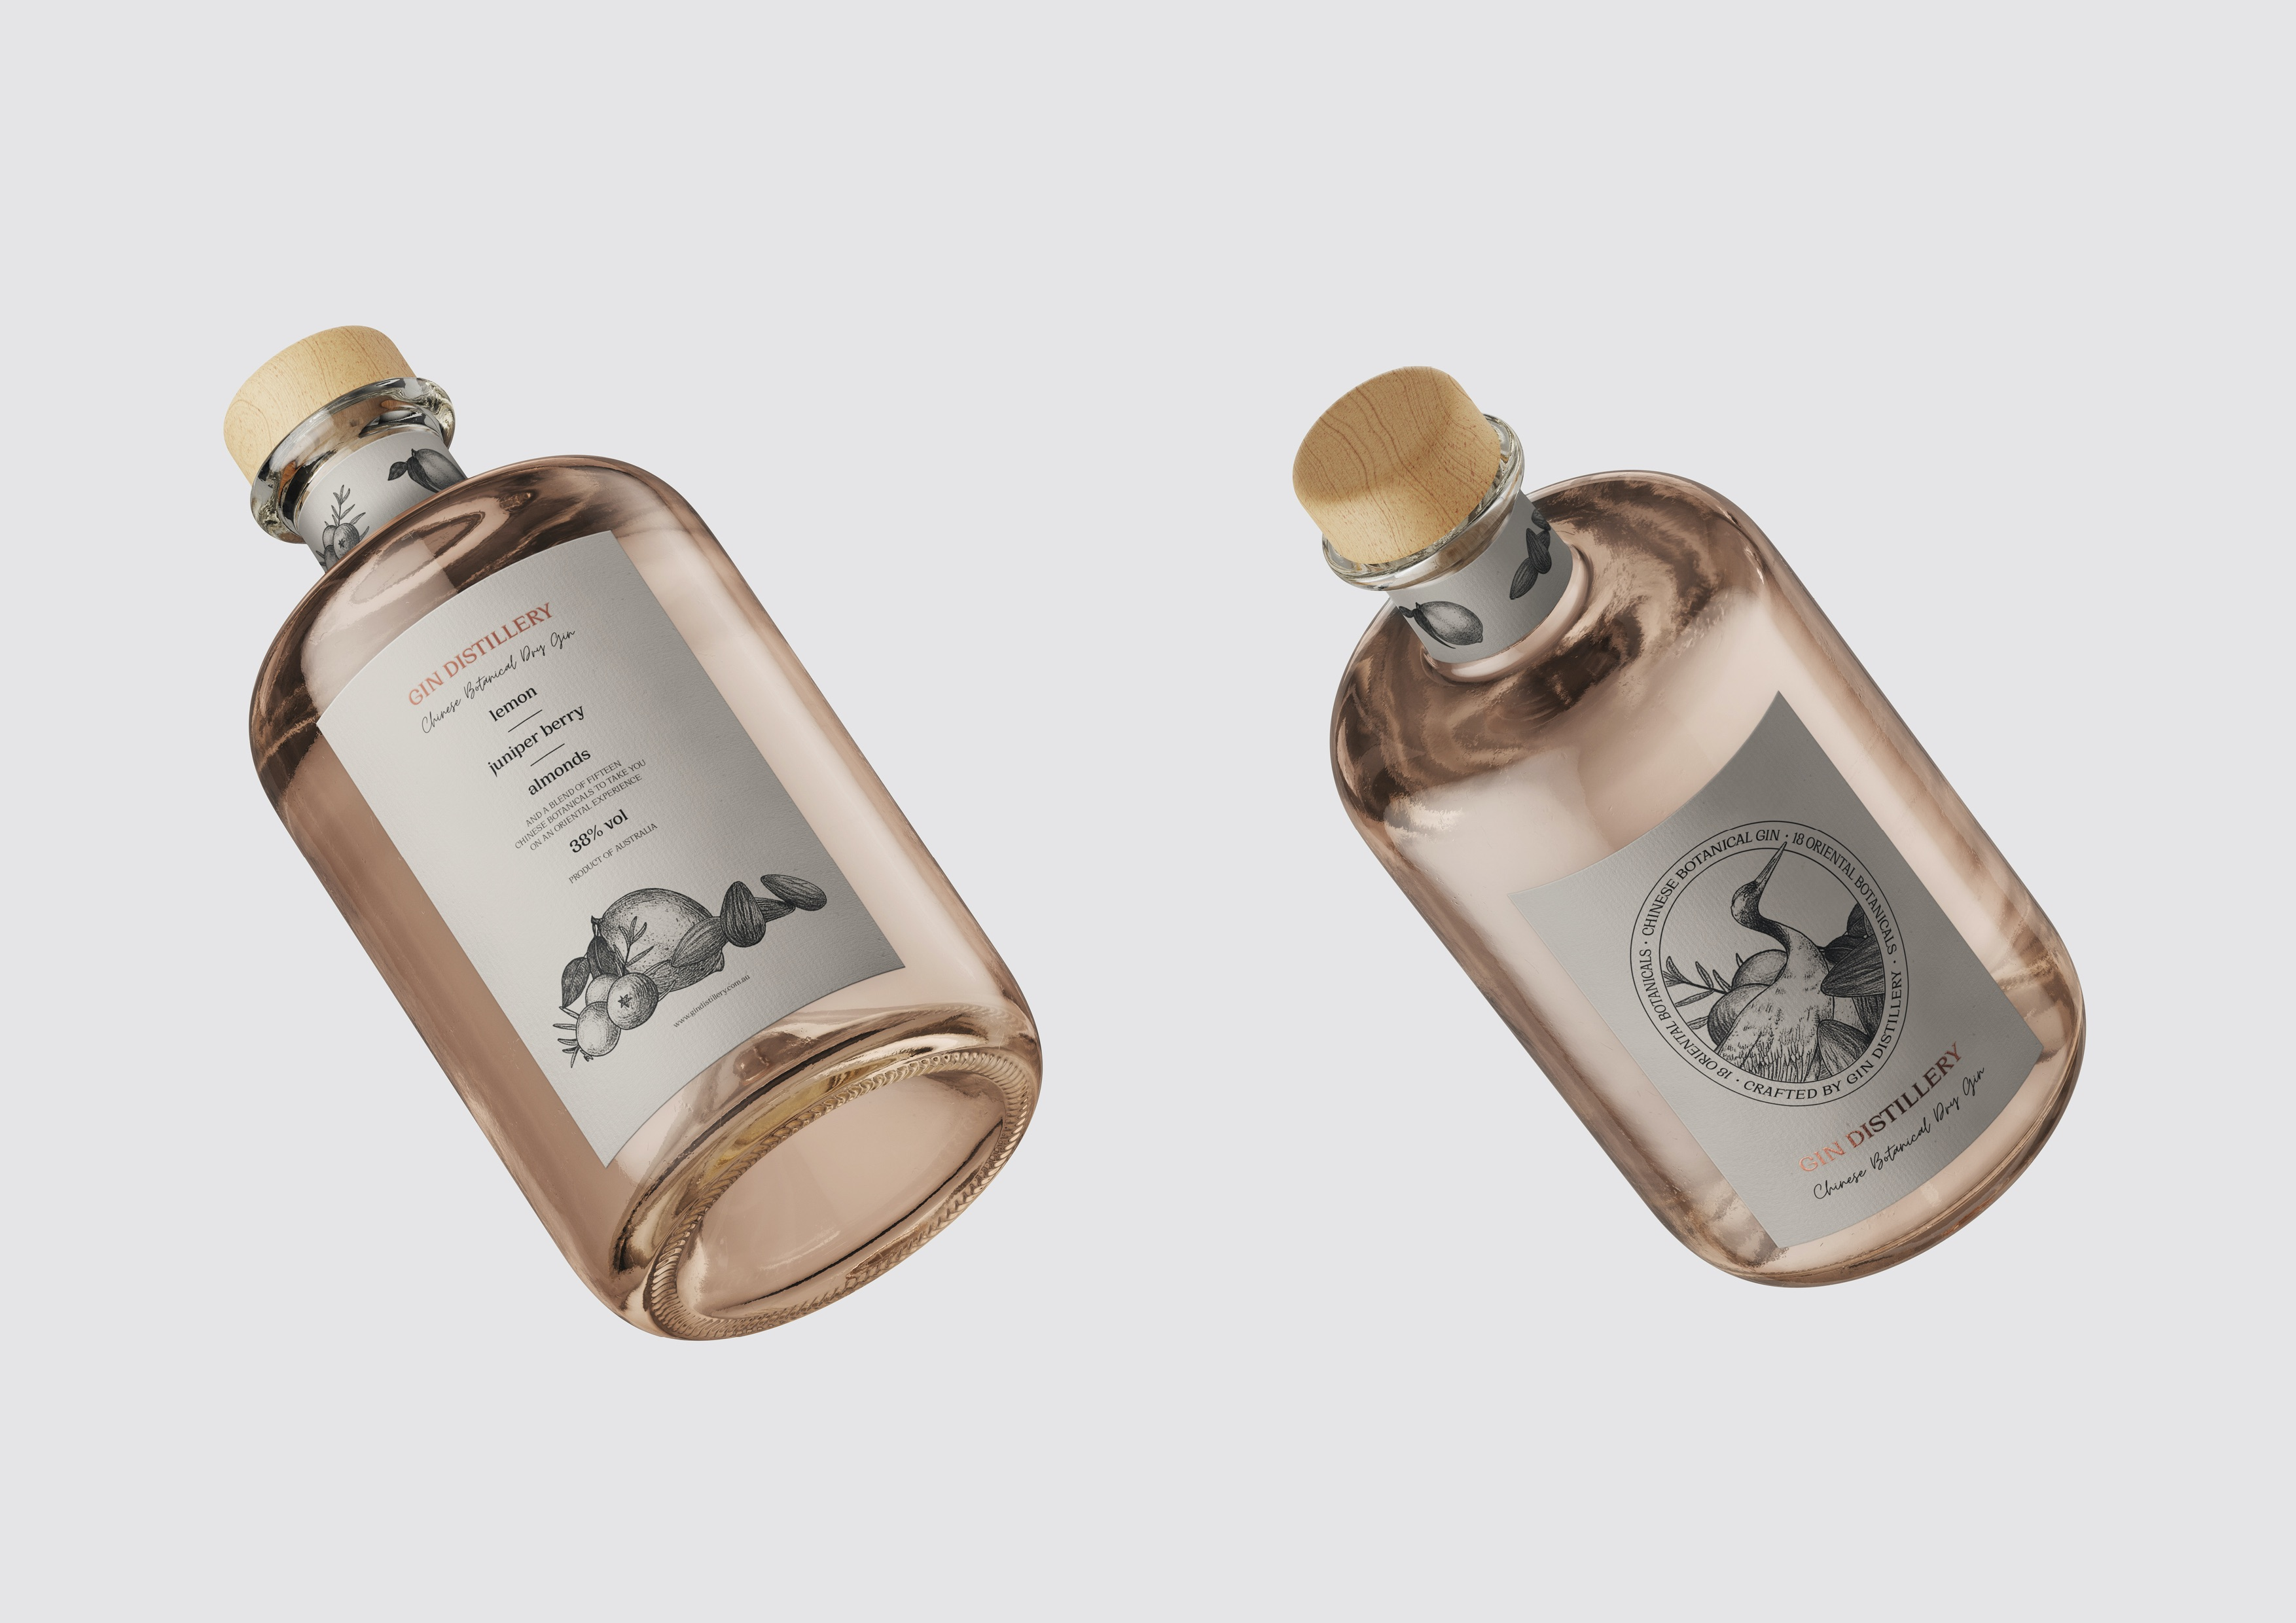 Ticky Lan Creates Packaging Label Design for Chinese Botanical Crafted Gin owned by Gin Distillery